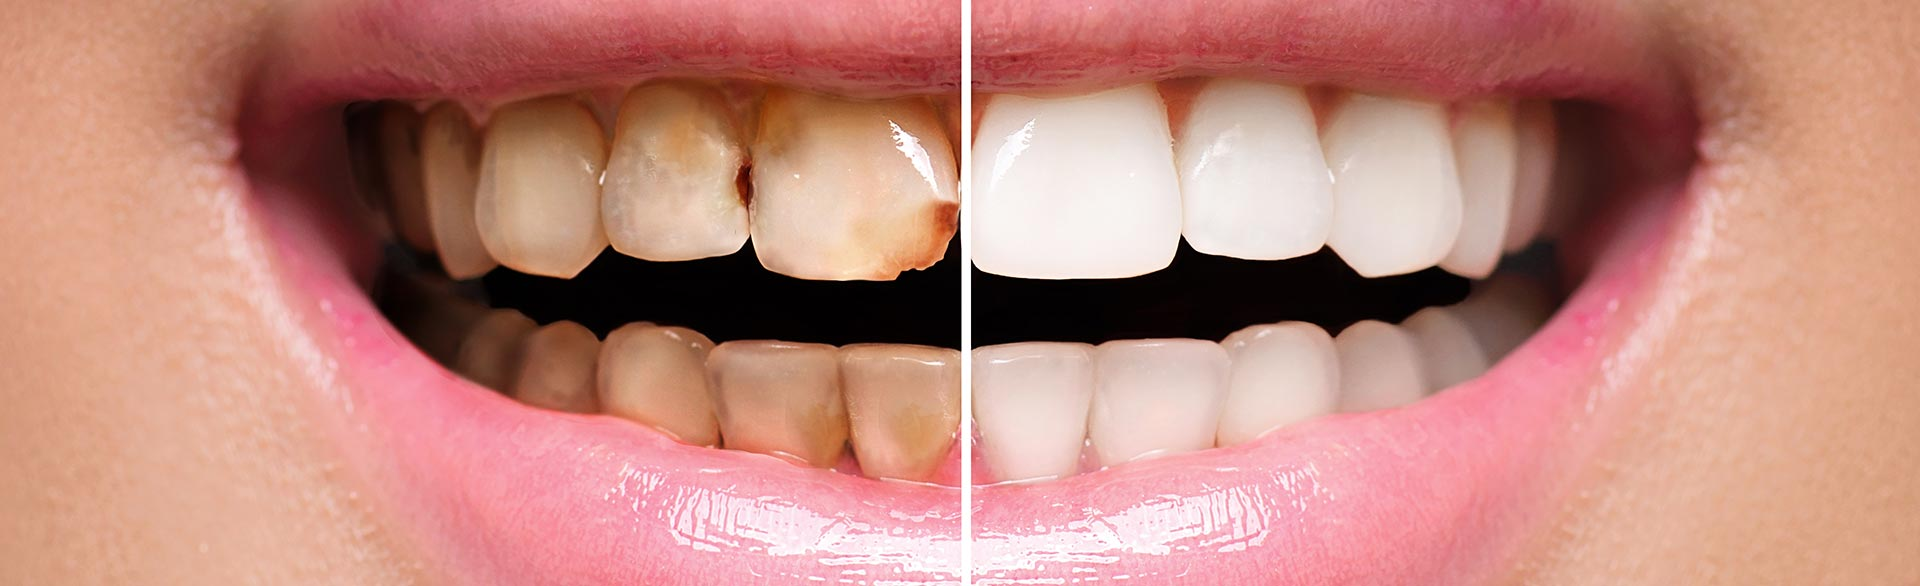 restore-your-dental-health-and-appearance-with-a-complete-smile-makeover